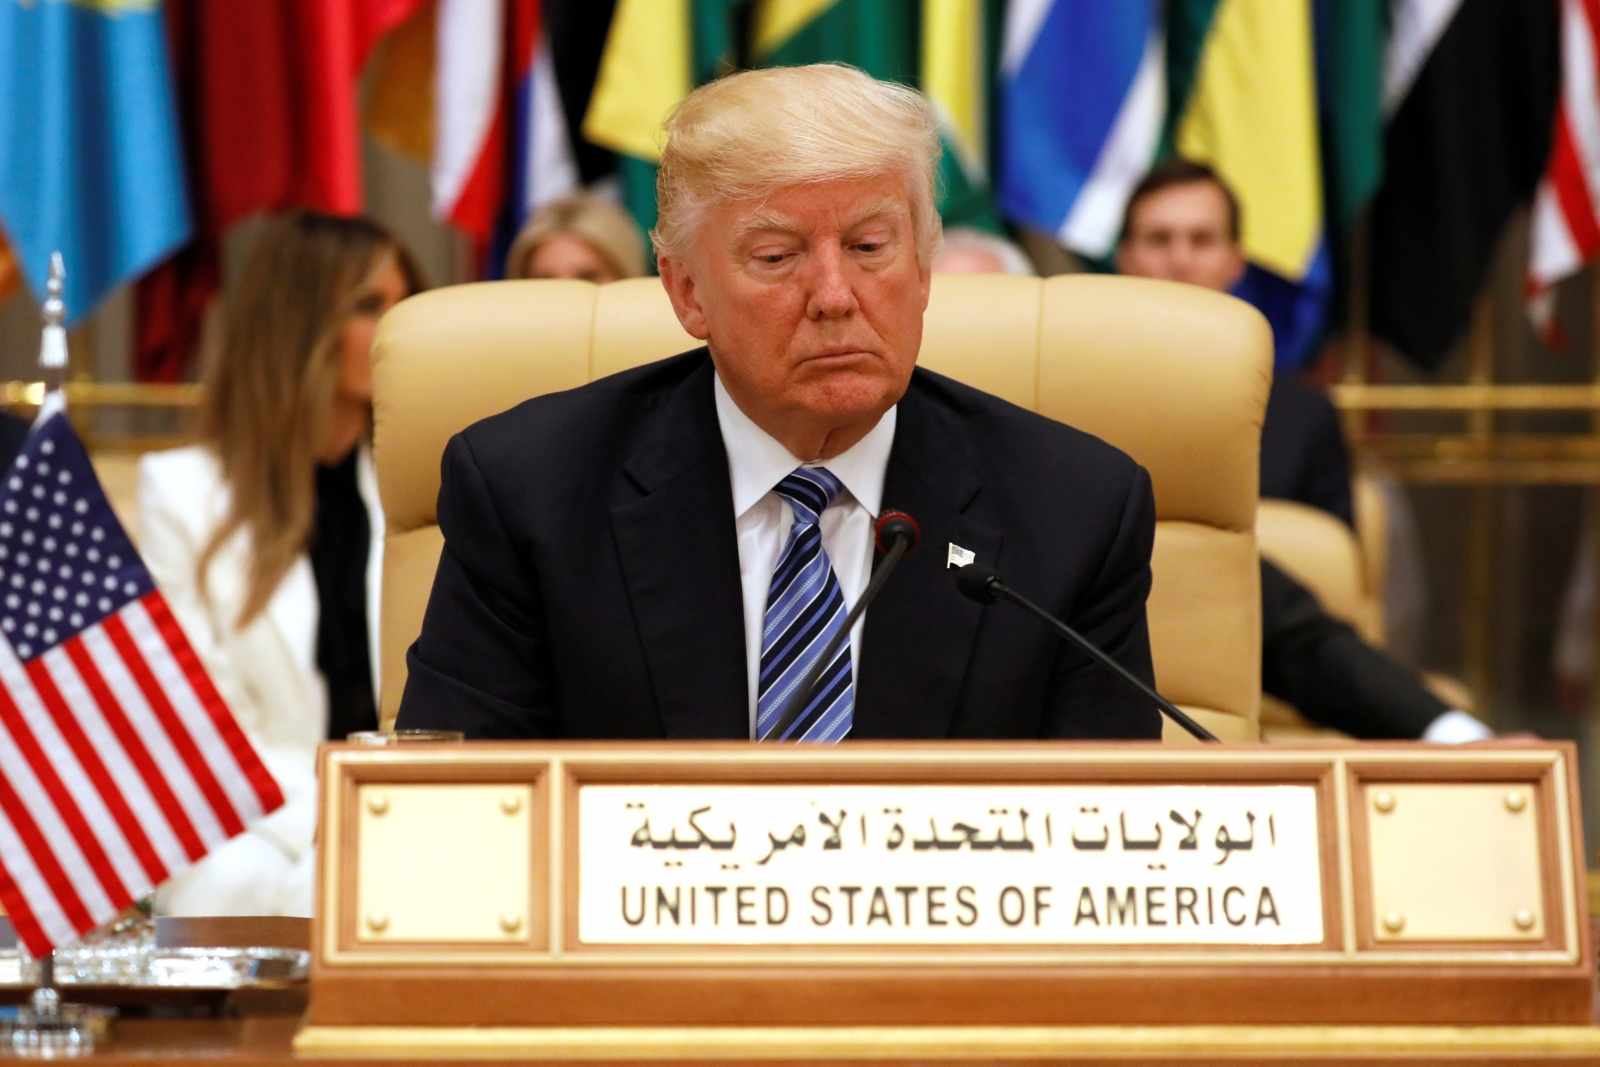 Trump urges Muslim leaders to 'drive out the terrorists'